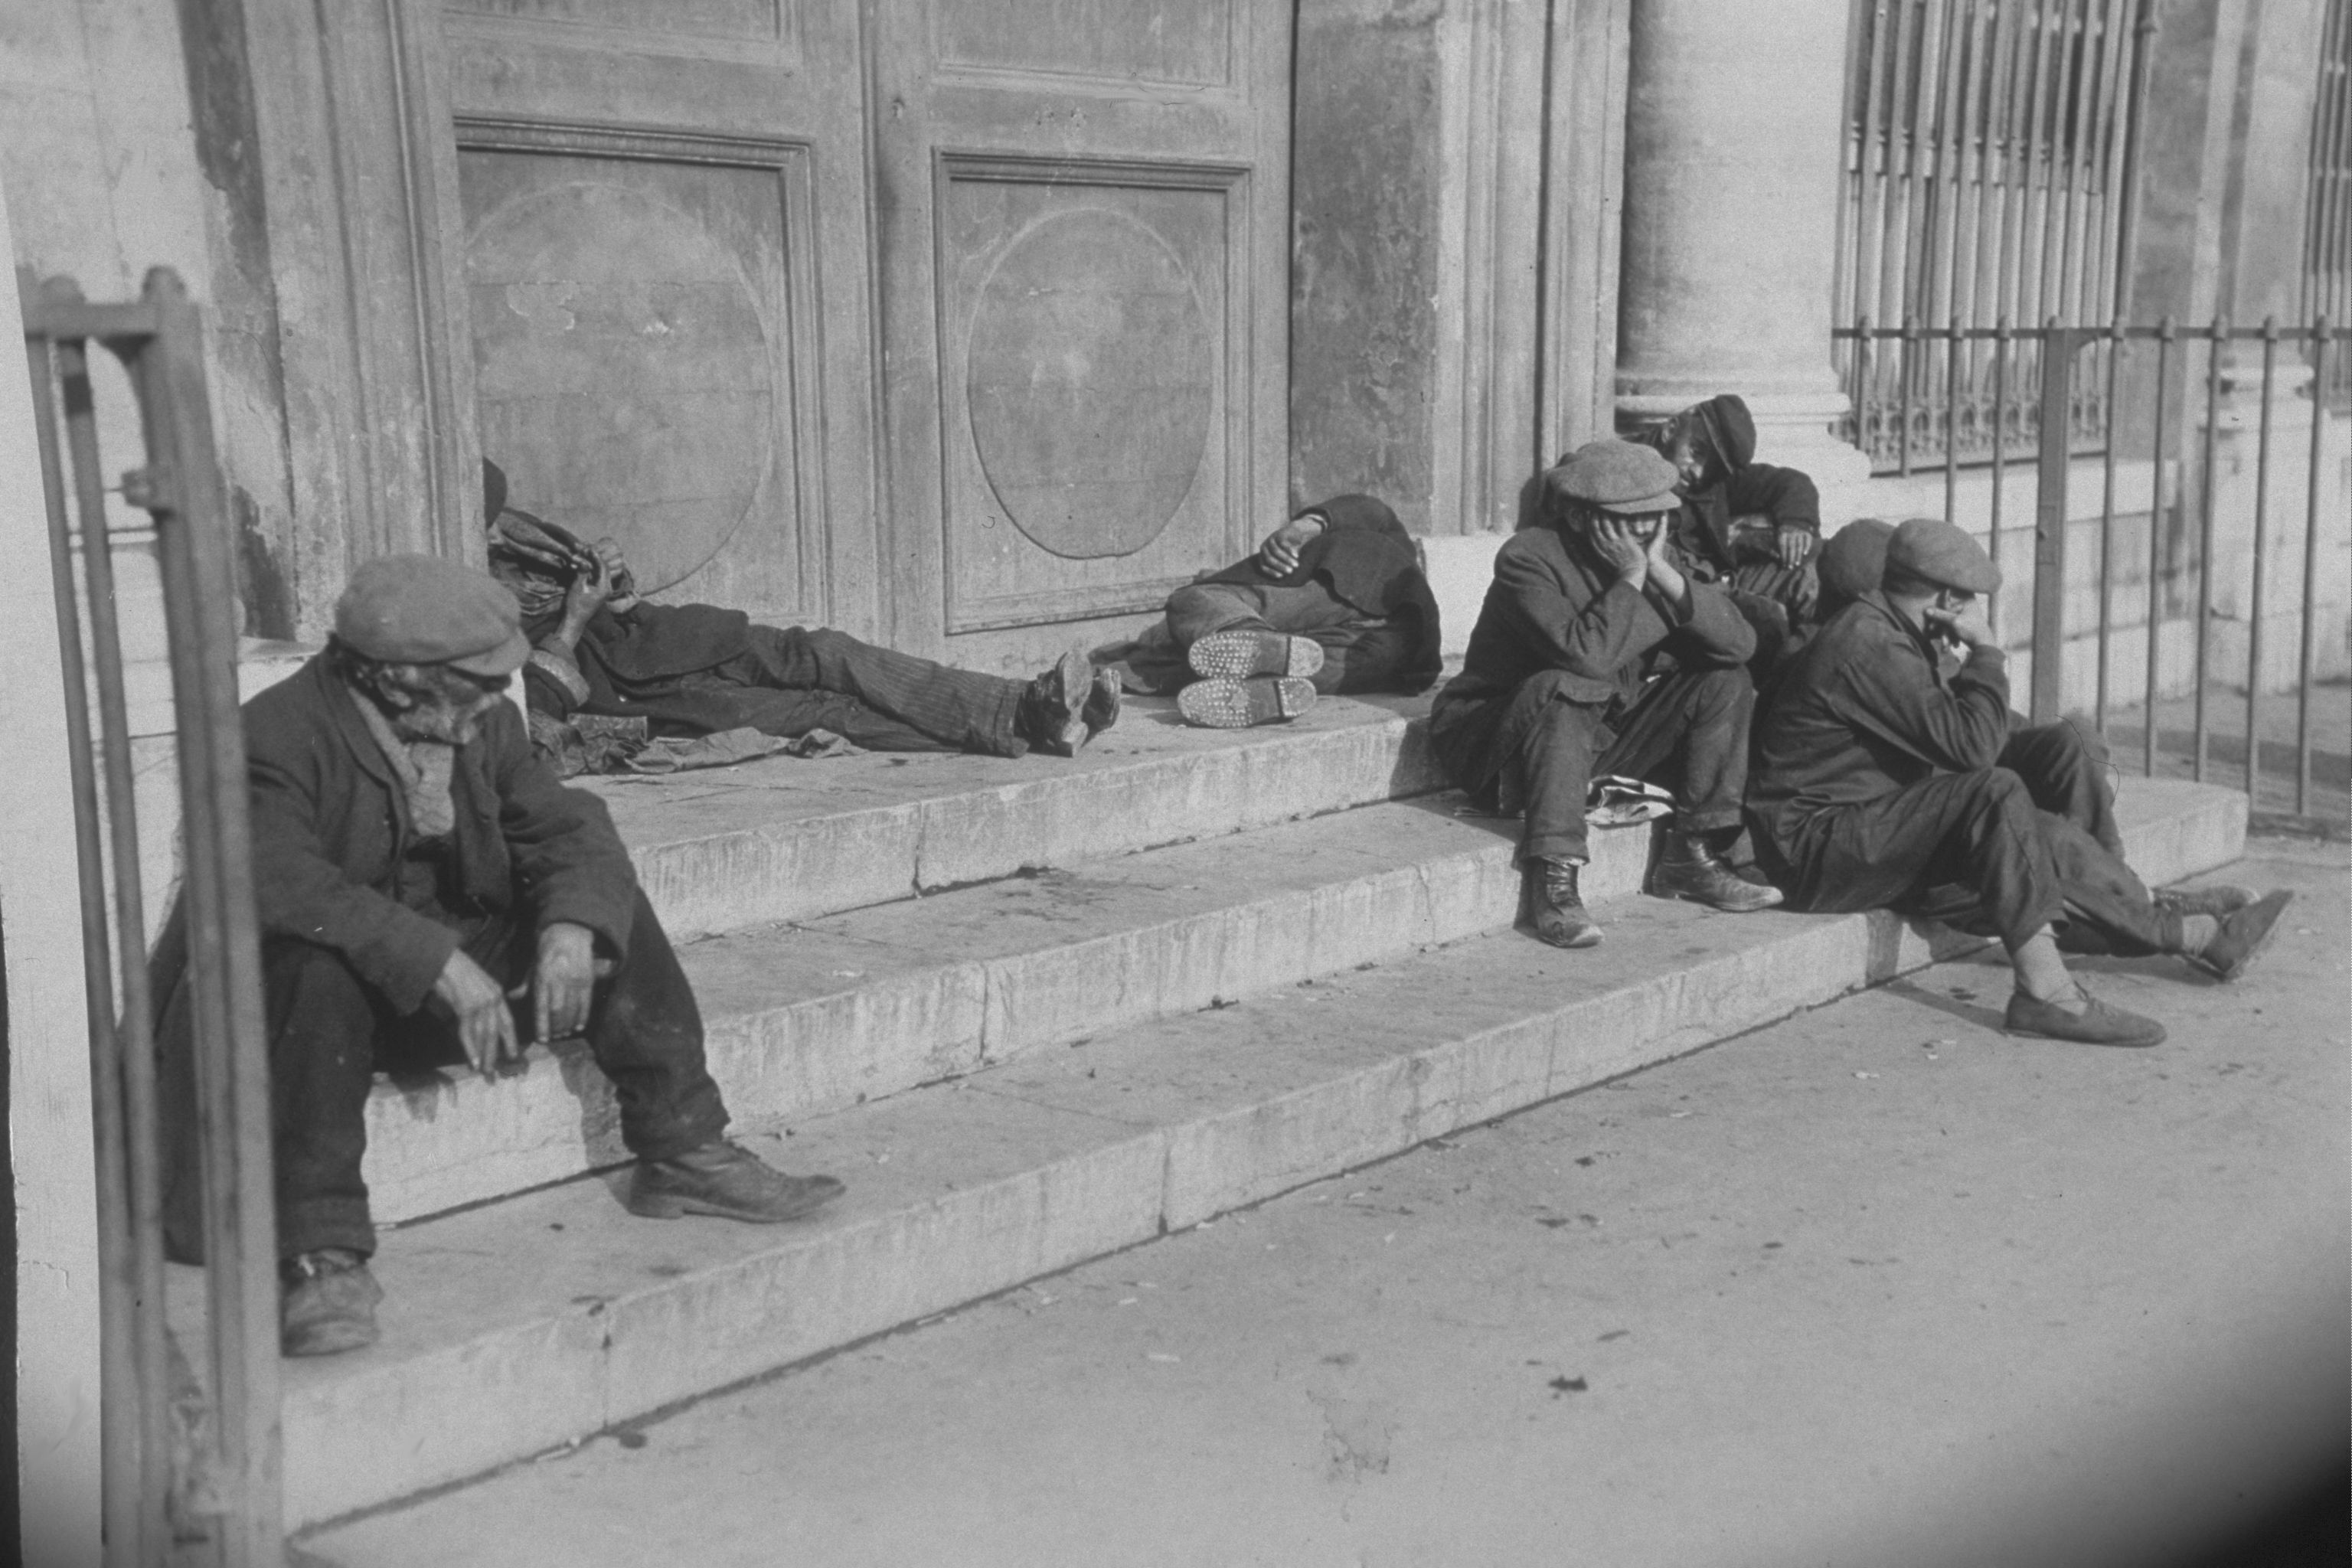 Beggars, suffering from a lack of affordable housing, on the steps of a town hall